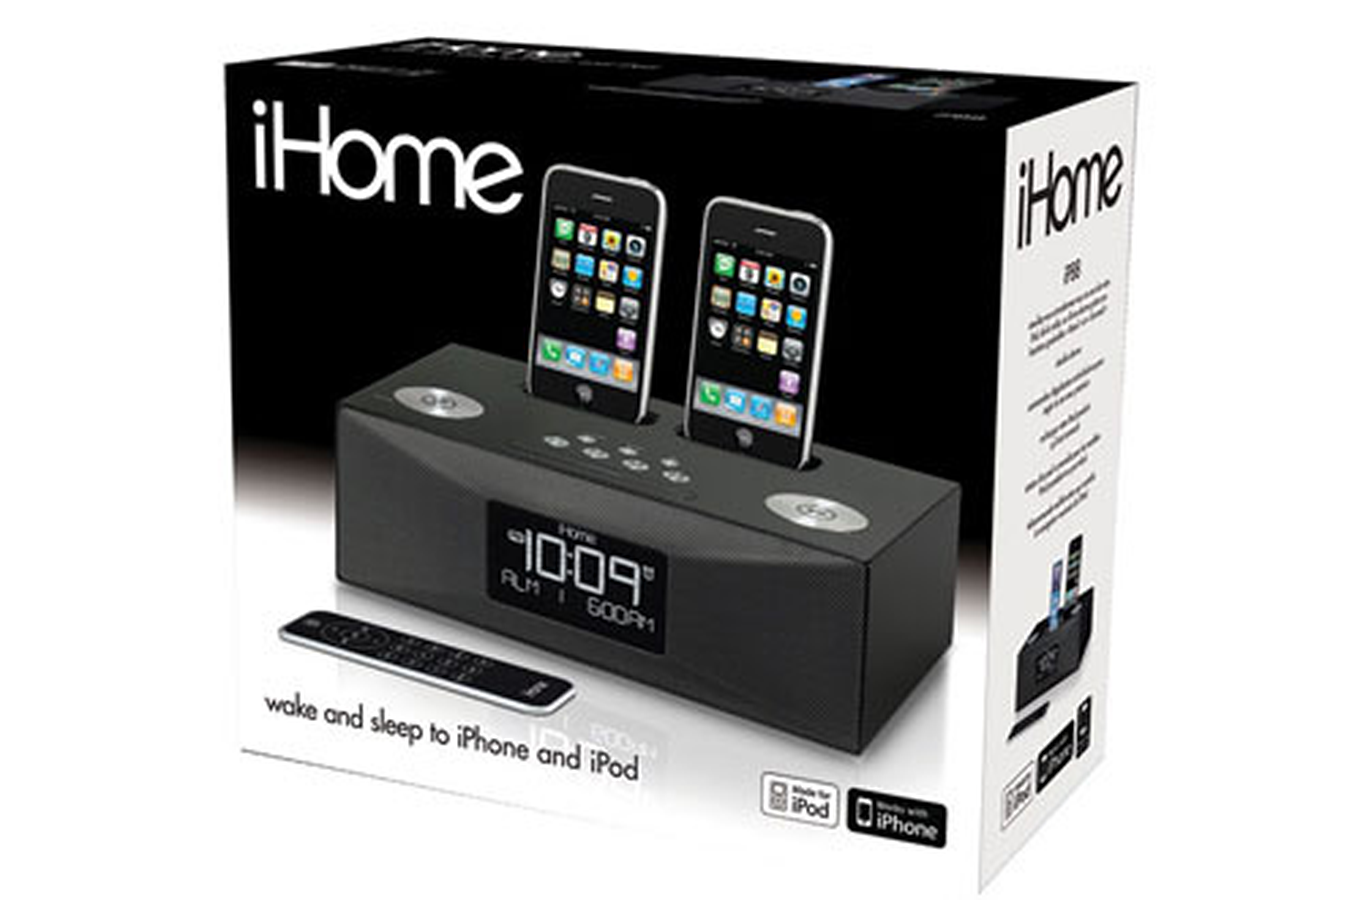 station d 39 accueil ihome ip88 ip88 1224379 darty. Black Bedroom Furniture Sets. Home Design Ideas